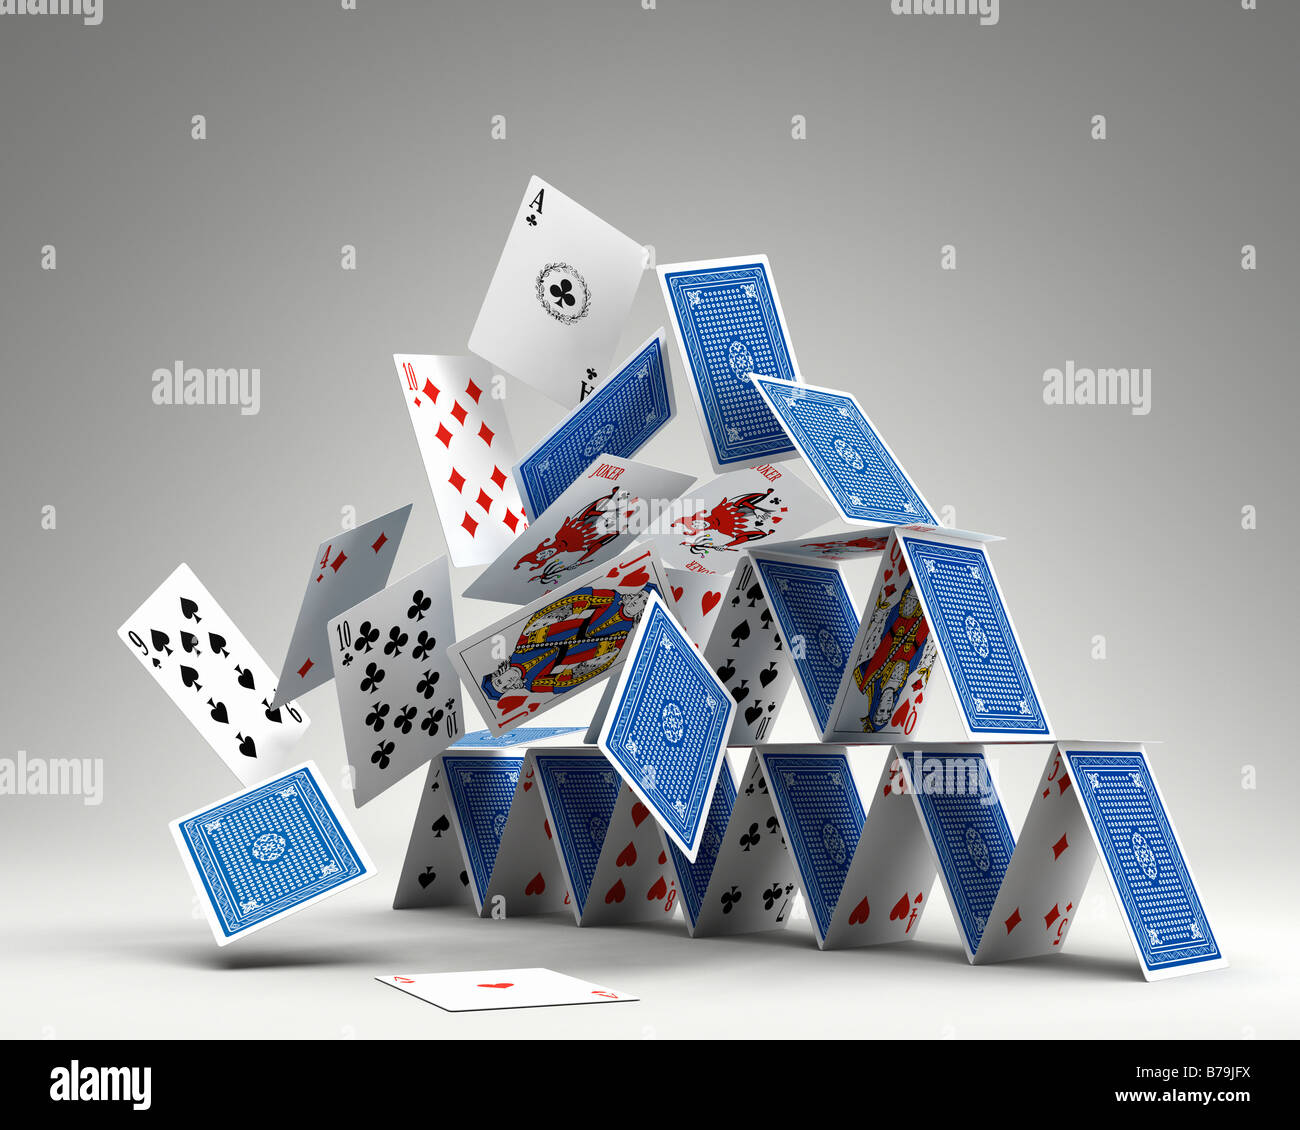 photorealistic 3d render of a house of cards collapsing